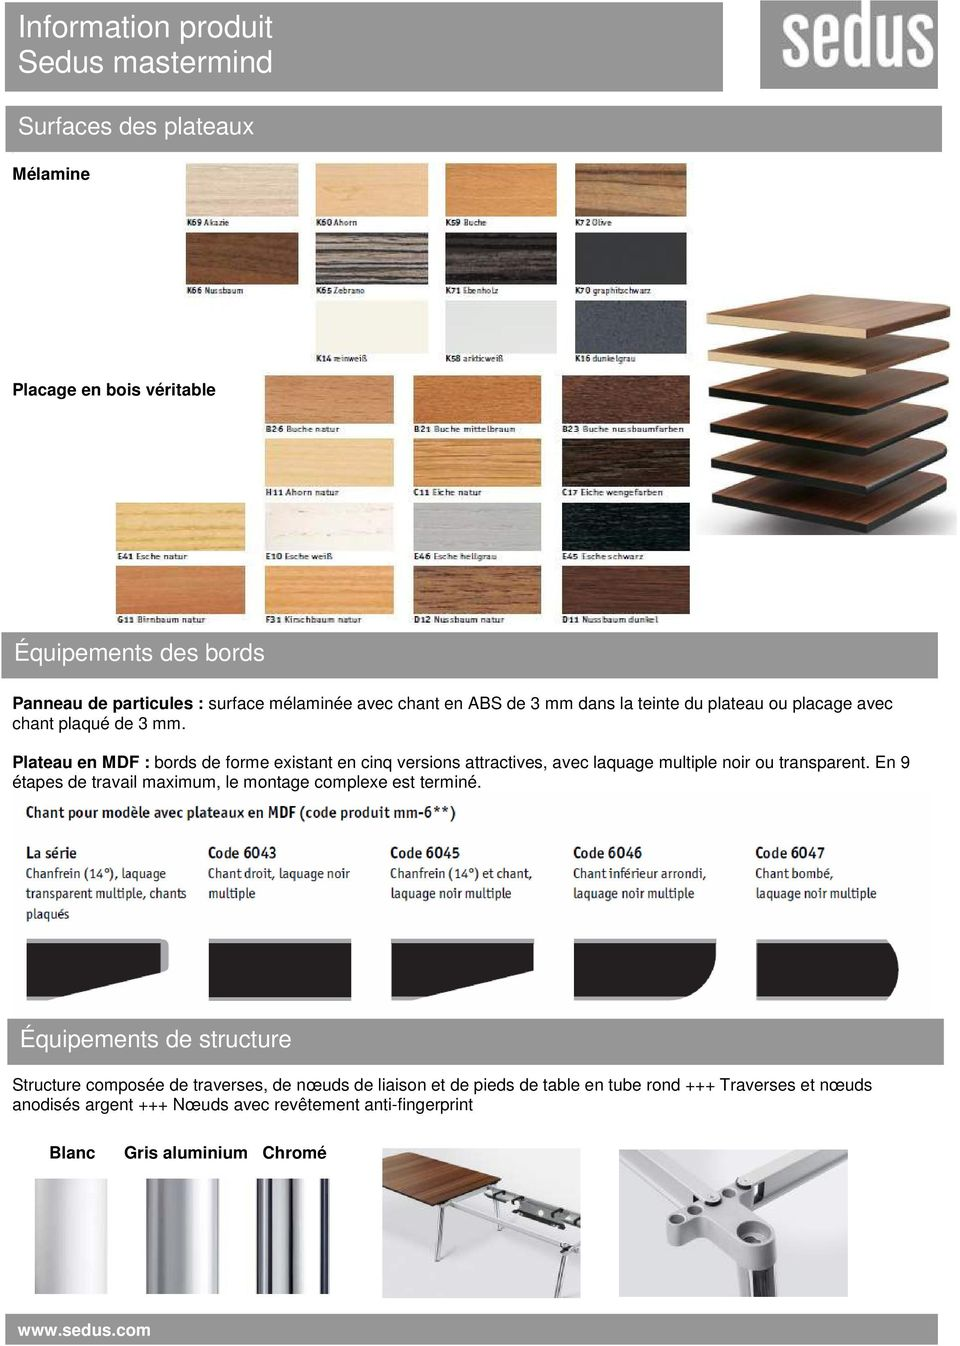 Plateau en MDF : bords de forme existant en cinq versions attractives, avec laquage multiple noir ou transparent.